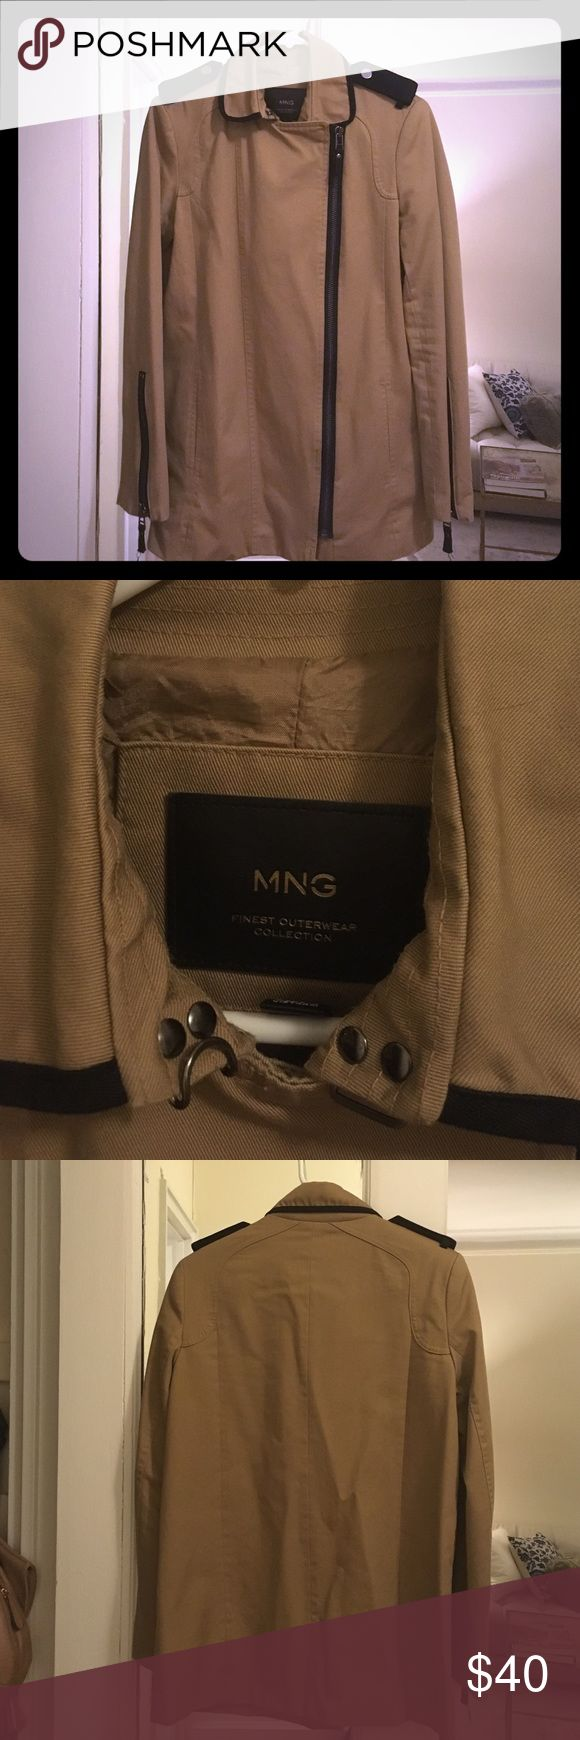 Mango khaki field jacket Size XS (fits like S) cotton khaki field coat by Mango. Black trim. Zips up front and zippers on sleeves. Fully lined. Looks like Burberry. Mango Jackets & Coats Utility Jackets